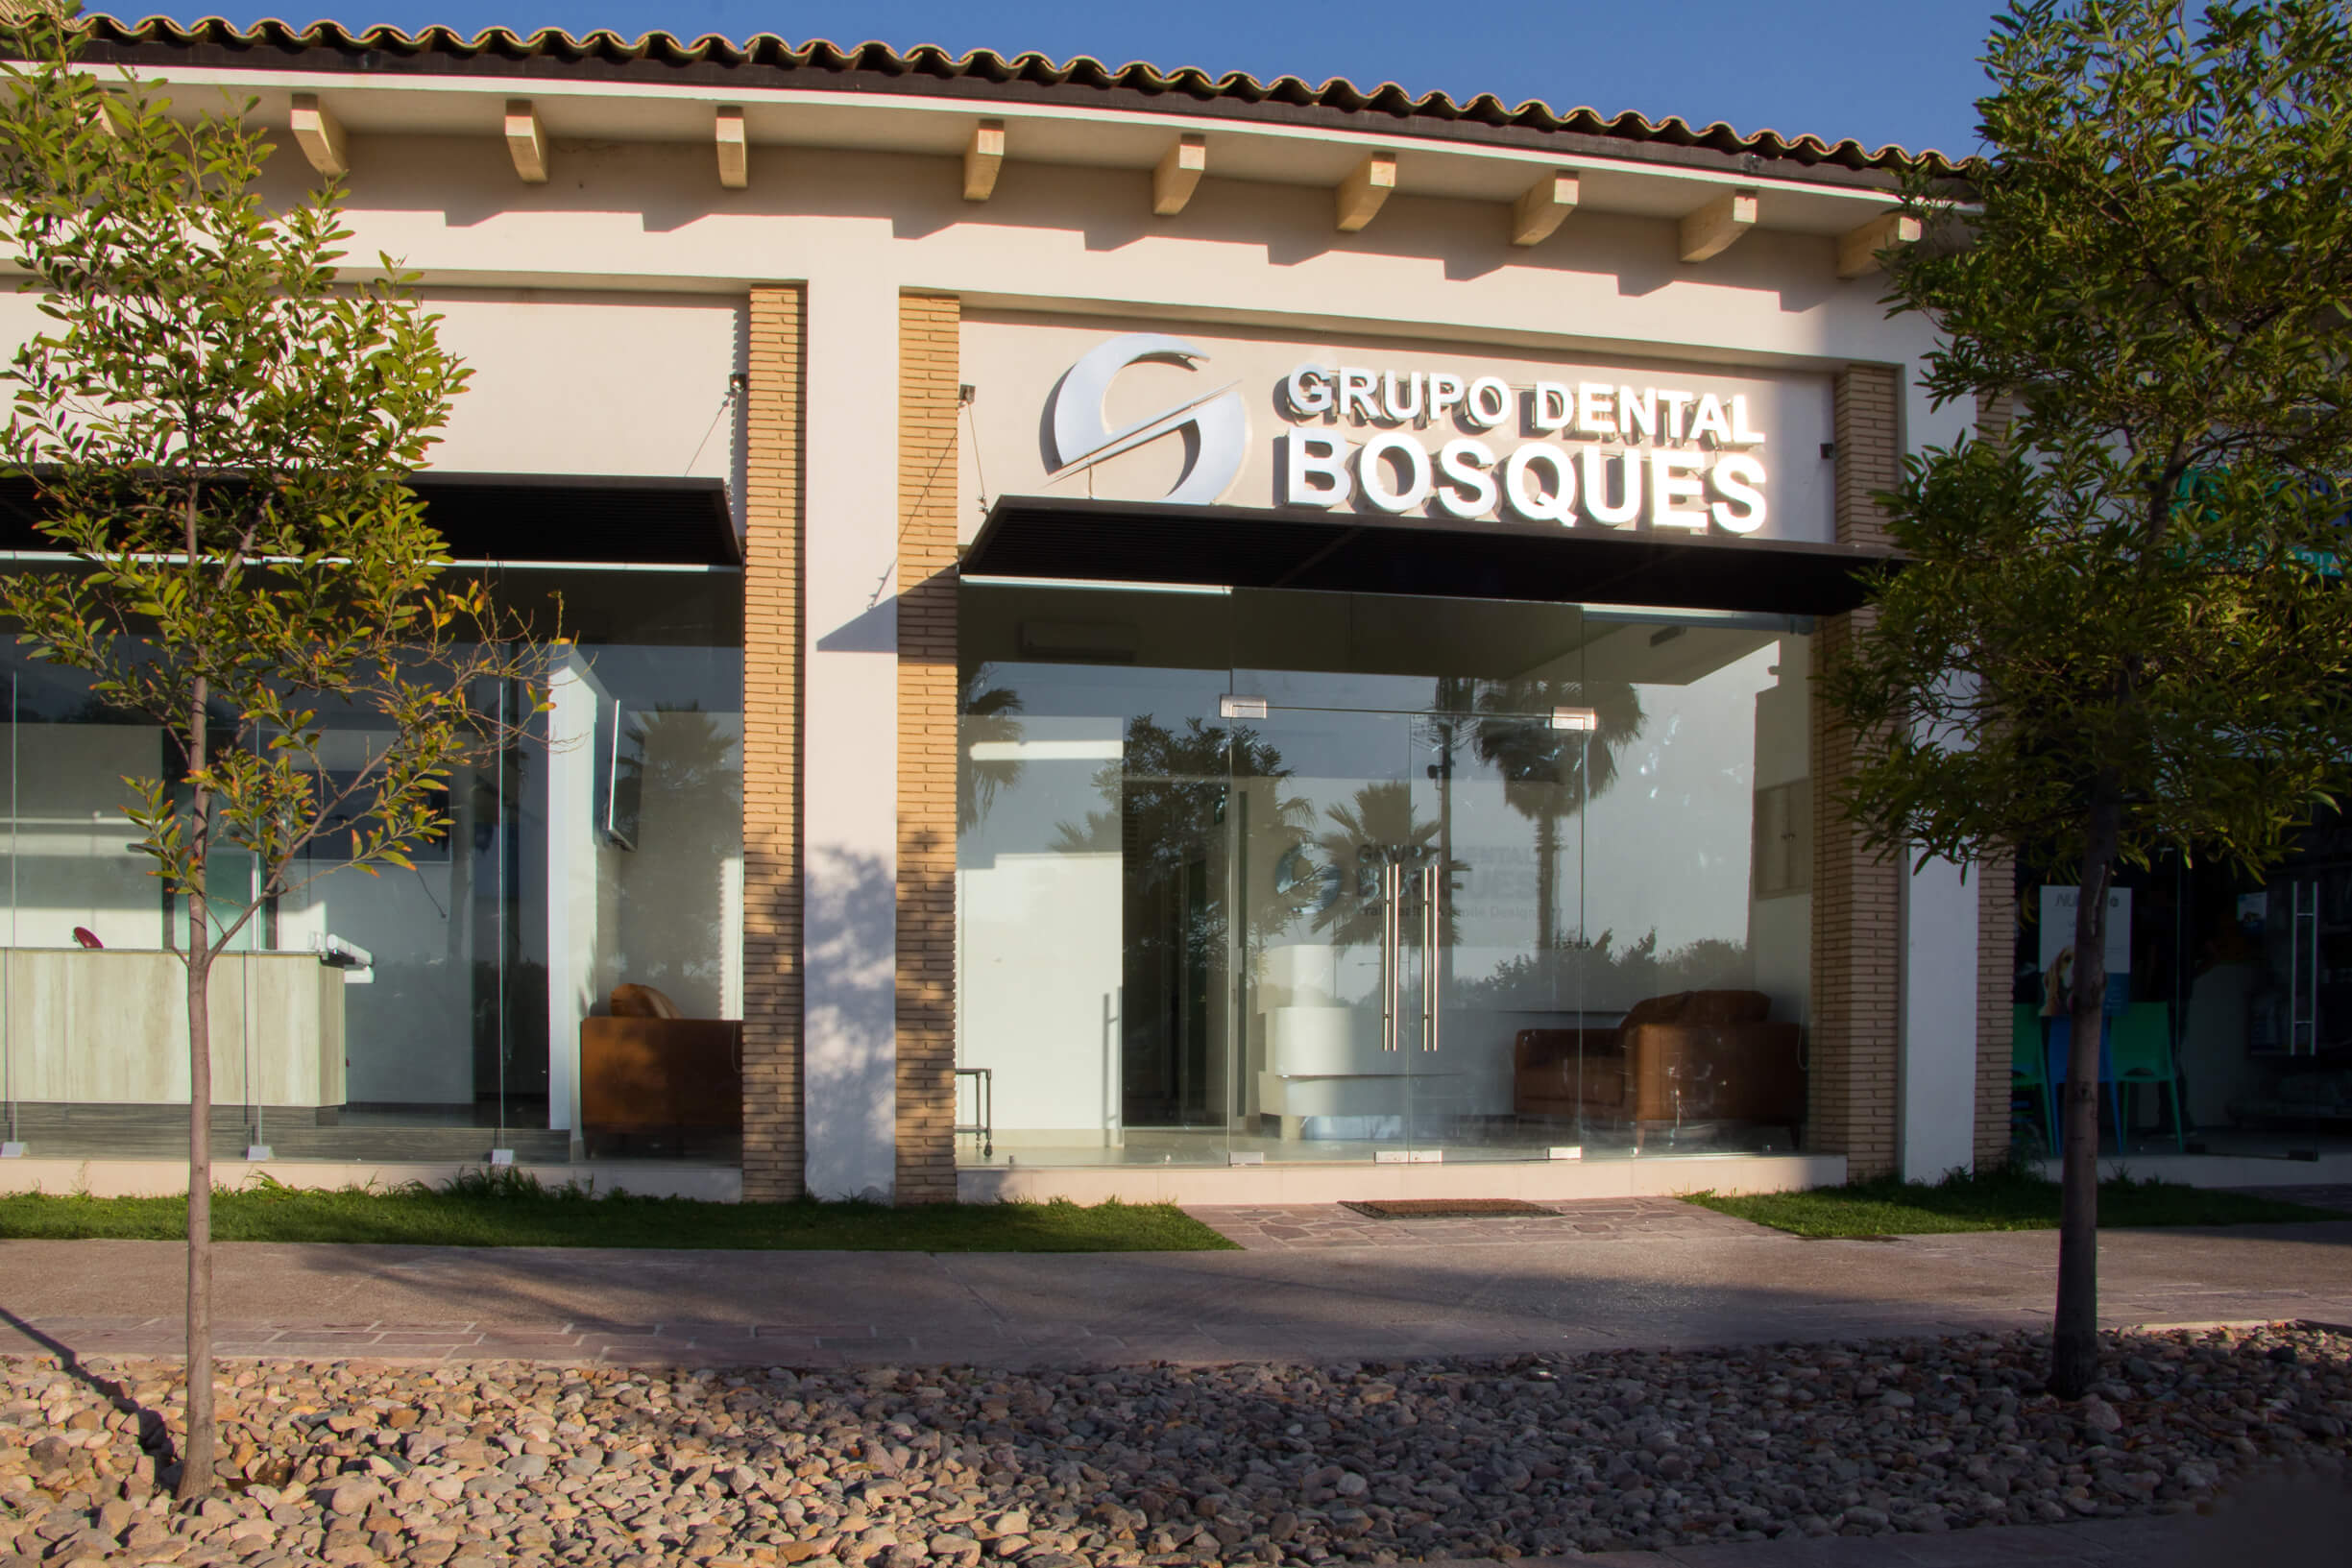 dentista leon - grupo dental bosques 1